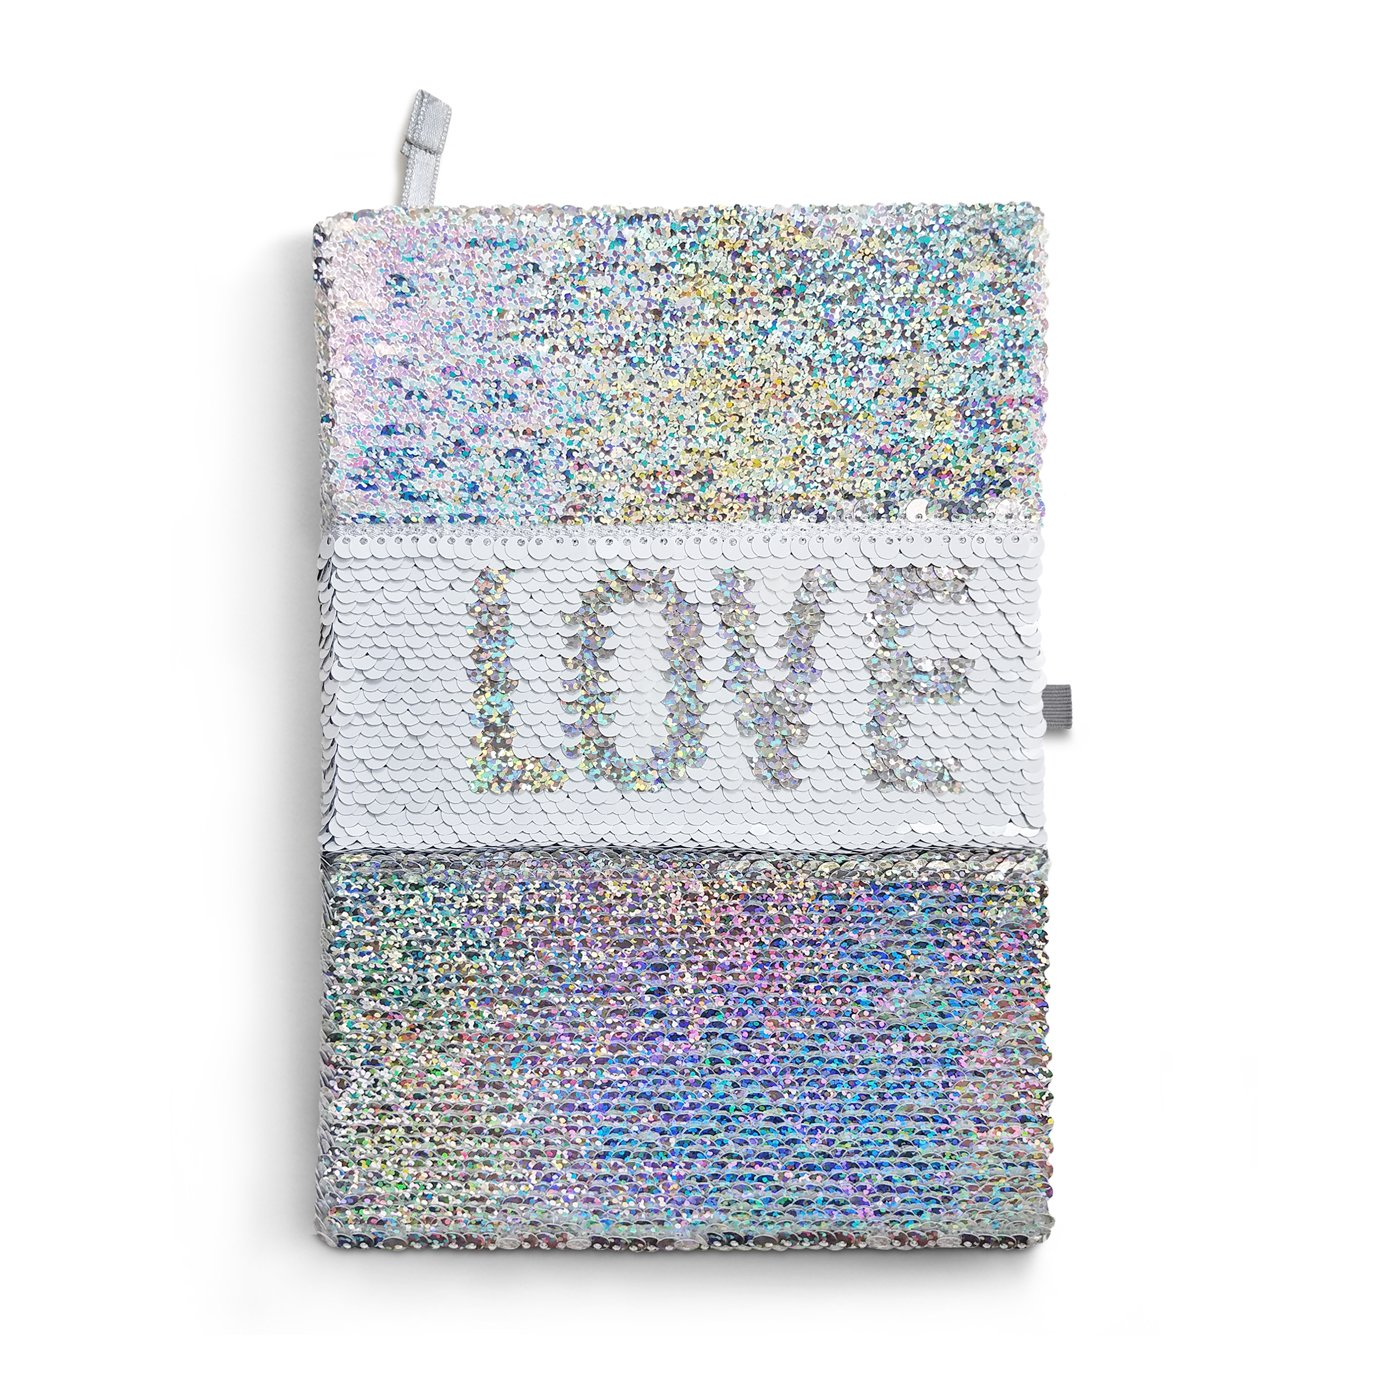 Magic Sequin Journal Where L0VE Changes to LlFE with Color Changing Flip Sequins - Pure White Sequin Notebook Reverses to Dazzling Rainbow/Mermaid Silver - Perfect Gift for Girls and Teens